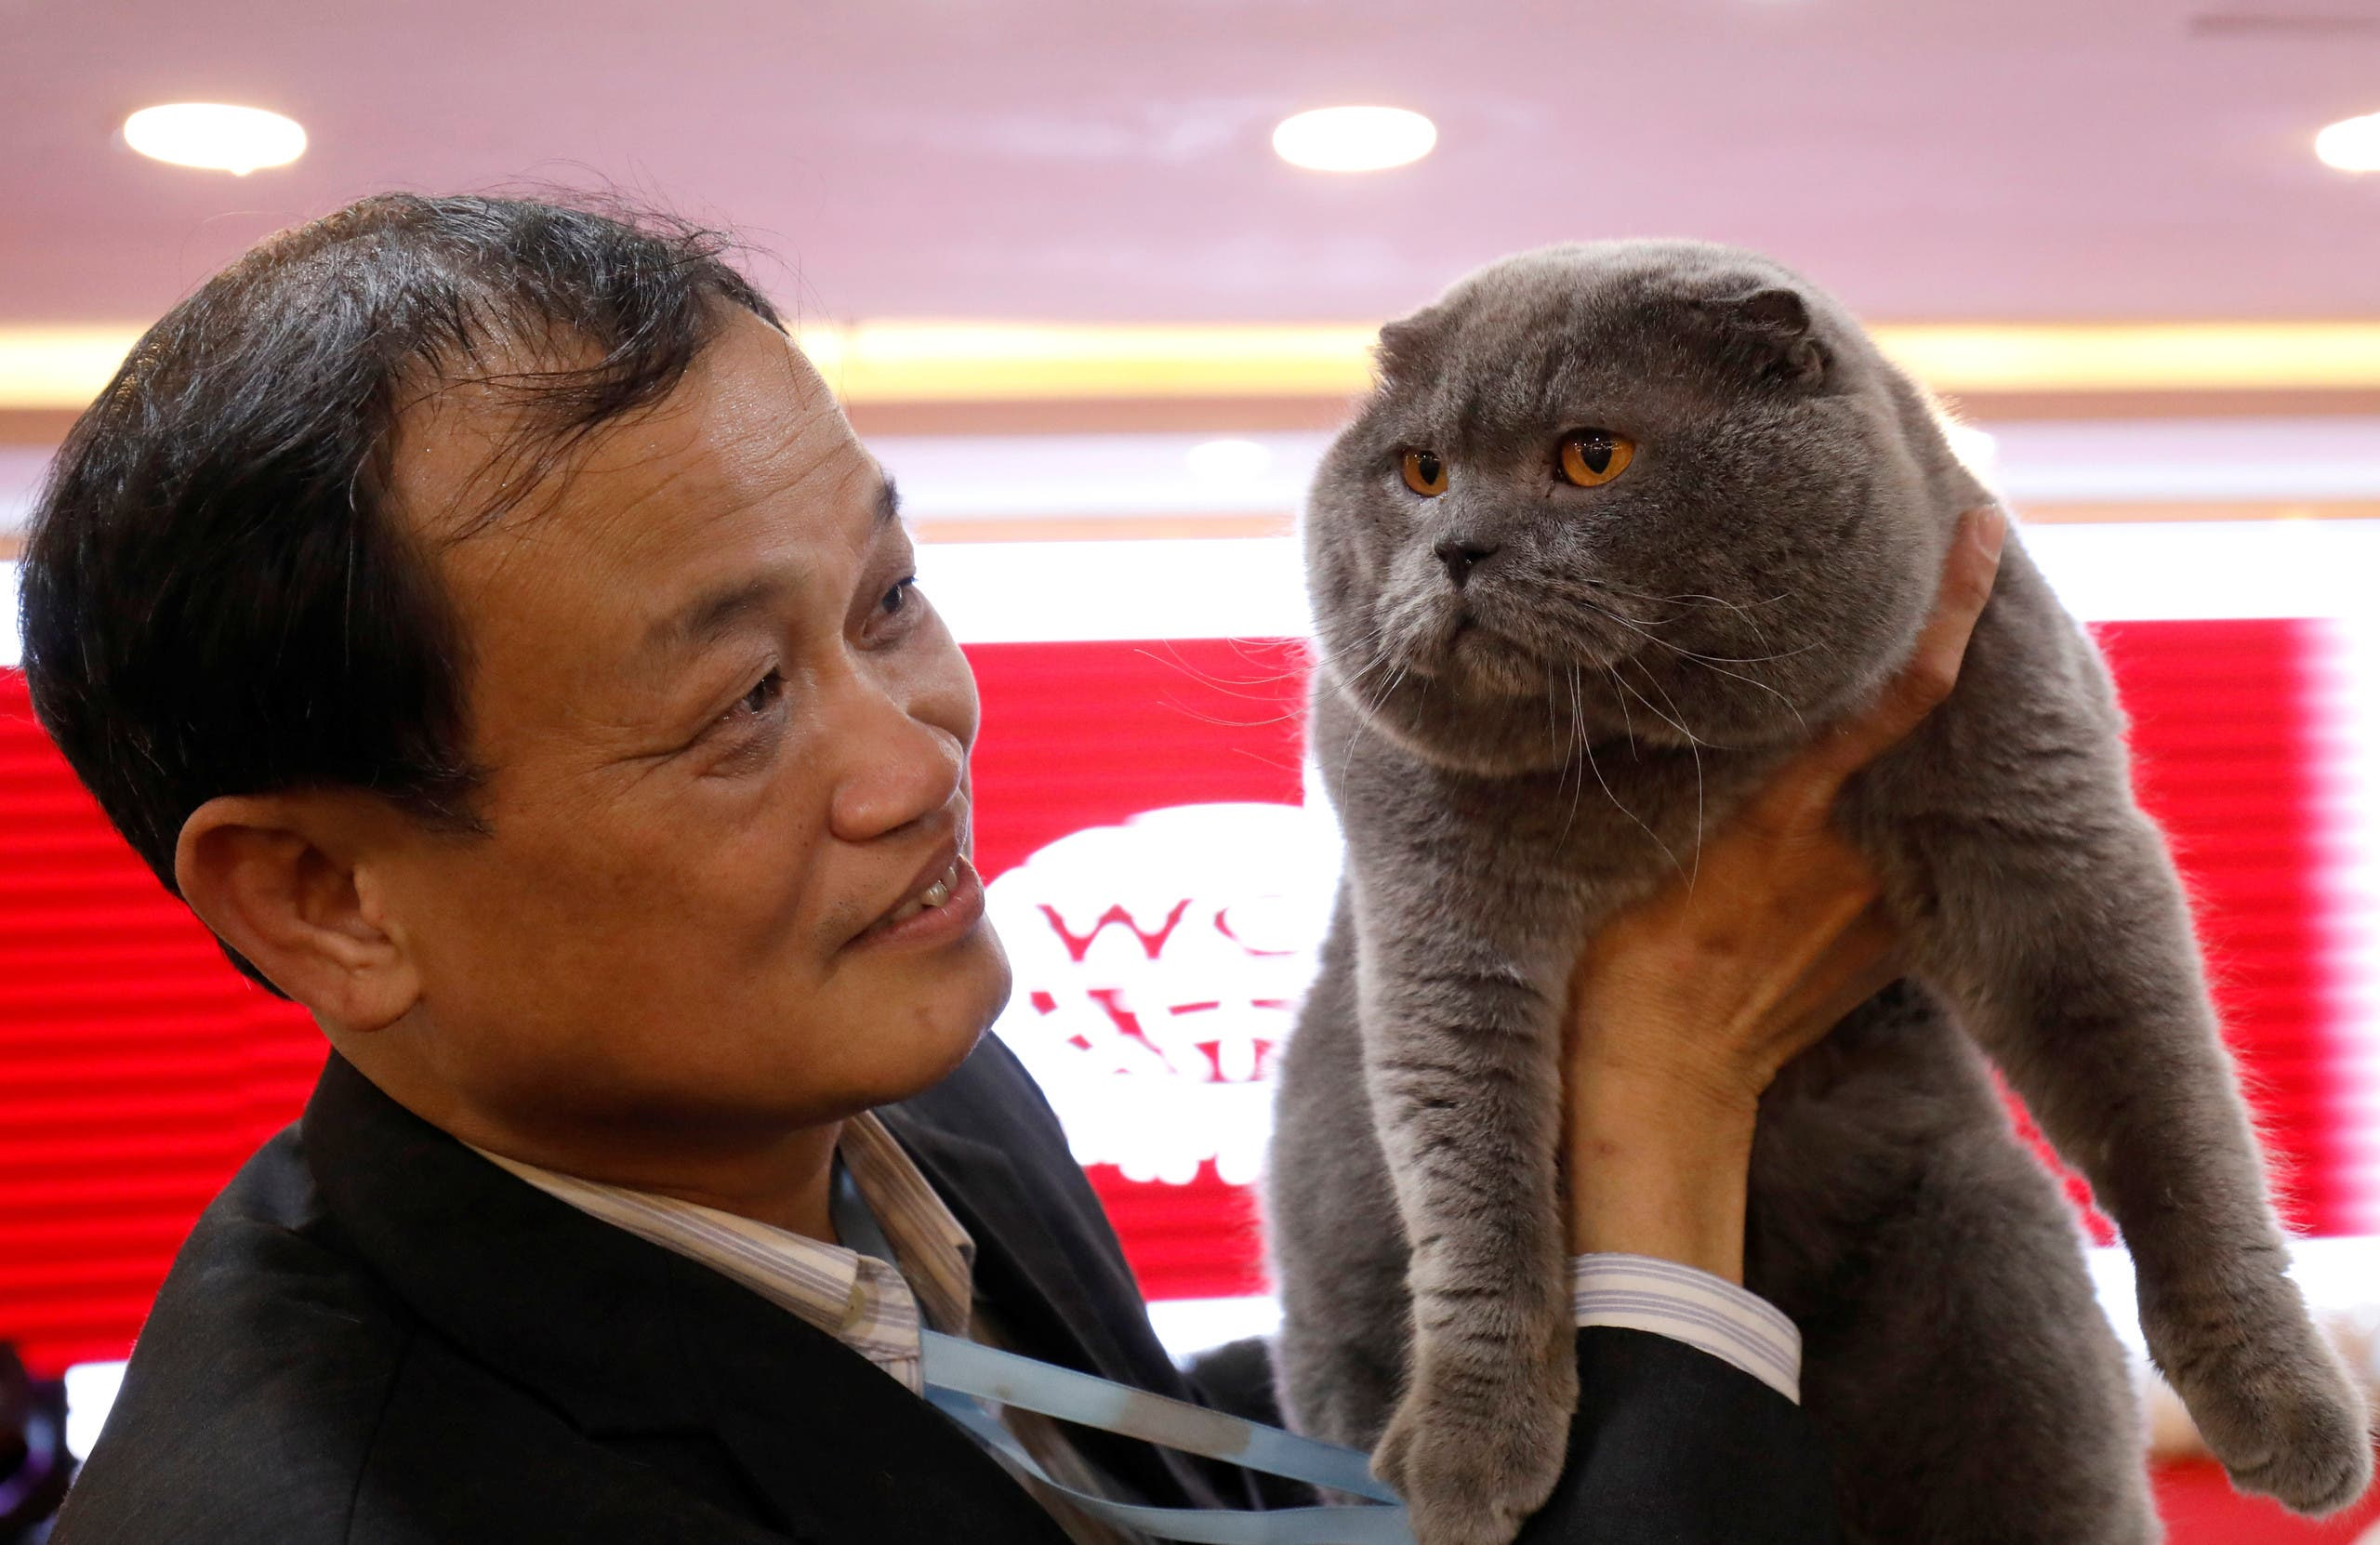 Dinh Chau Hieu Tam holds his cat during the Vietnam's first cat show in Hanoi, Vietnam February 16, 2020. REUTERS